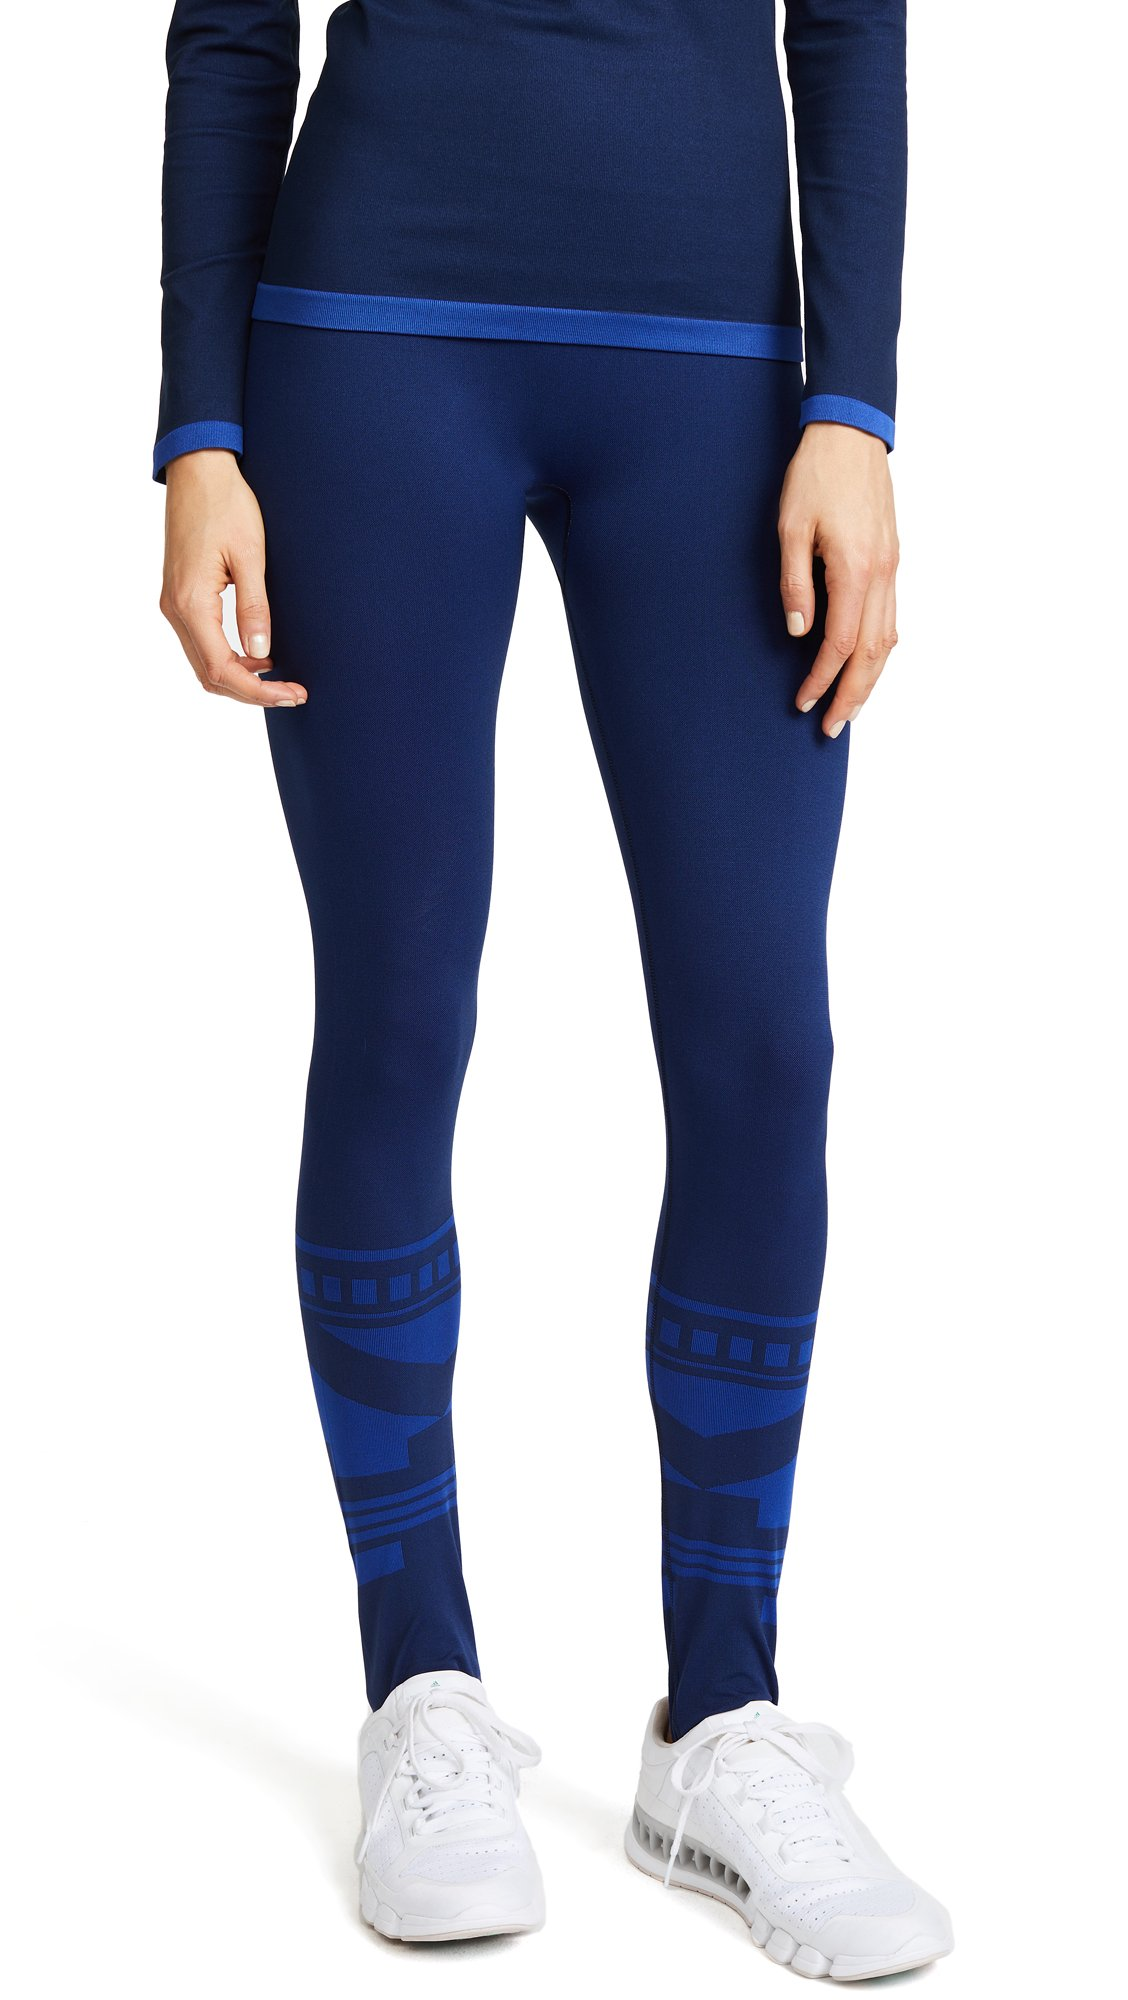 Tory Sport Women's Seamless Ski Leggings, Tory Navy Fairisle, Small